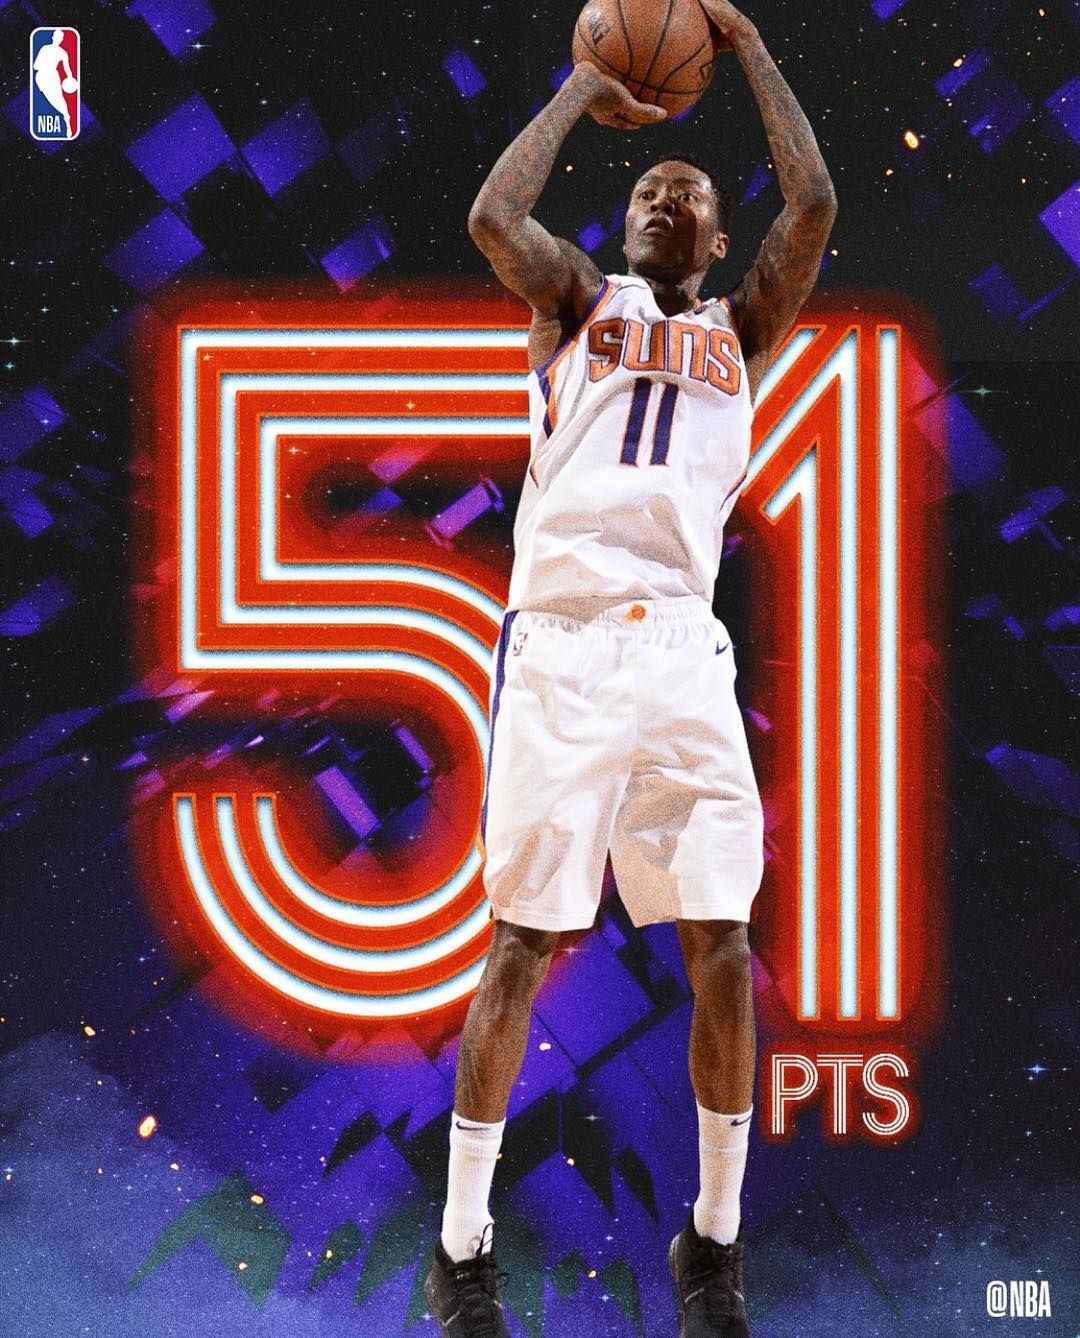 At 39 Years 20 Days Old Jamal Crawford Became The Oldest Player In Nbahistory To Score 50 With 51 For The Suns Tonight Tv Sport Ballislife Jamal